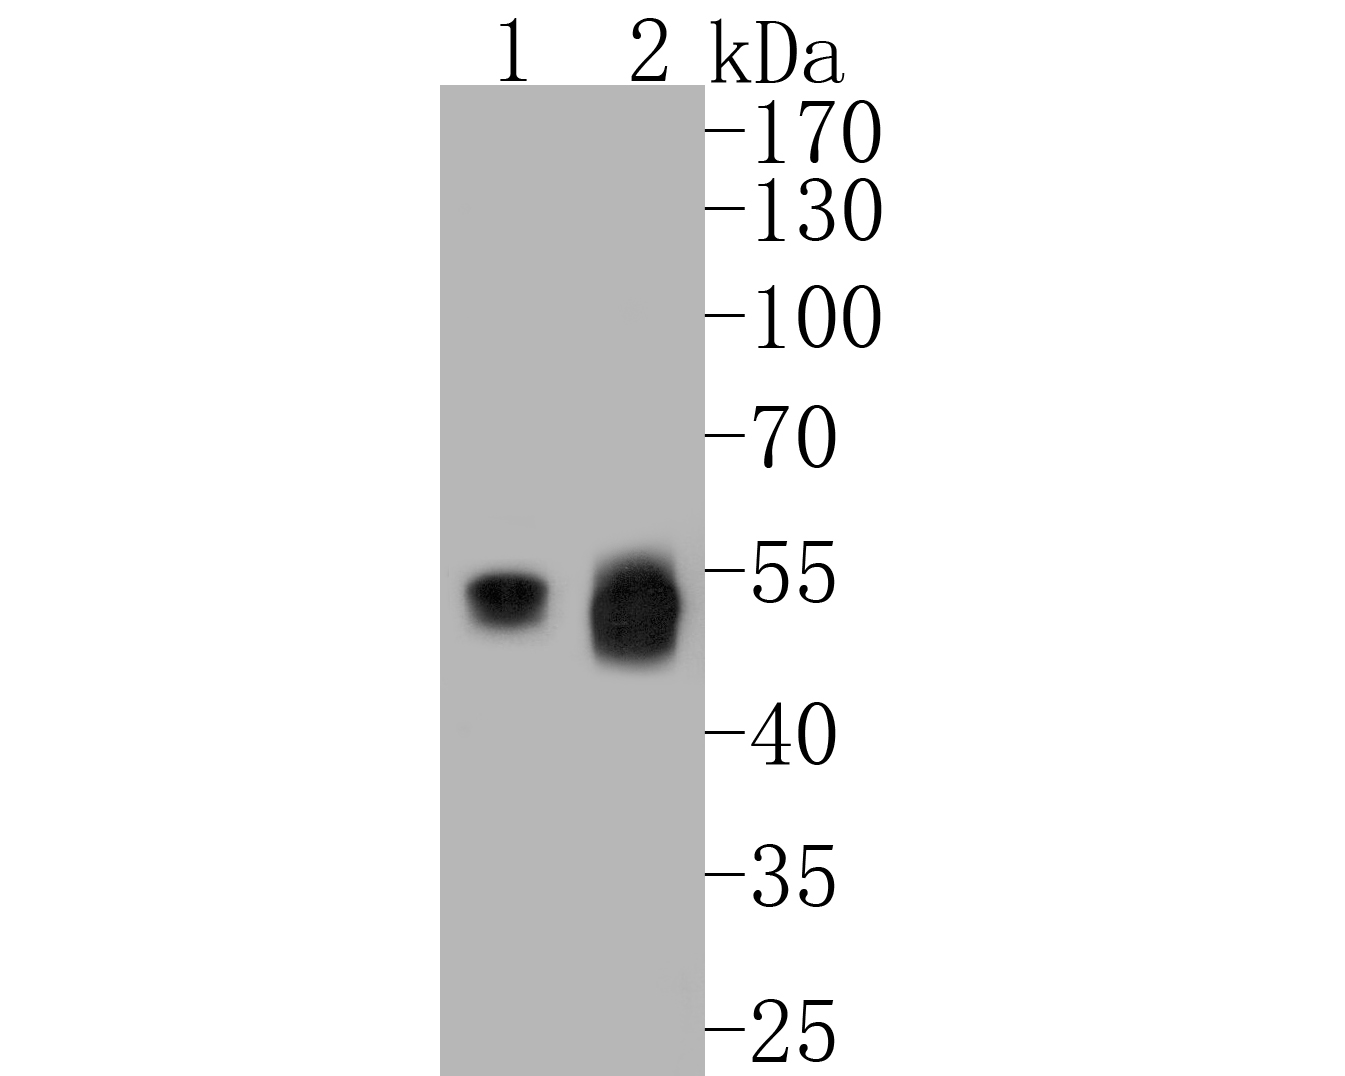 Western blot analysis of UBA3 on different lysates. Proteins were transferred to a PVDF membrane and blocked with 5% BSA in PBS for 1 hour at room temperature. The primary antibody (EM1901-65, 1/500) was used in 5% BSA at room temperature for 2 hours. Goat Anti-Mouse IgG - HRP Secondary Antibody (HA1006) at 1:5,000 dilution was used for 1 hour at room temperature.<br /> Positive control: <br /> Lane 1: HepG2 cell lysate<br /> Lane 2: 293T cell lysate